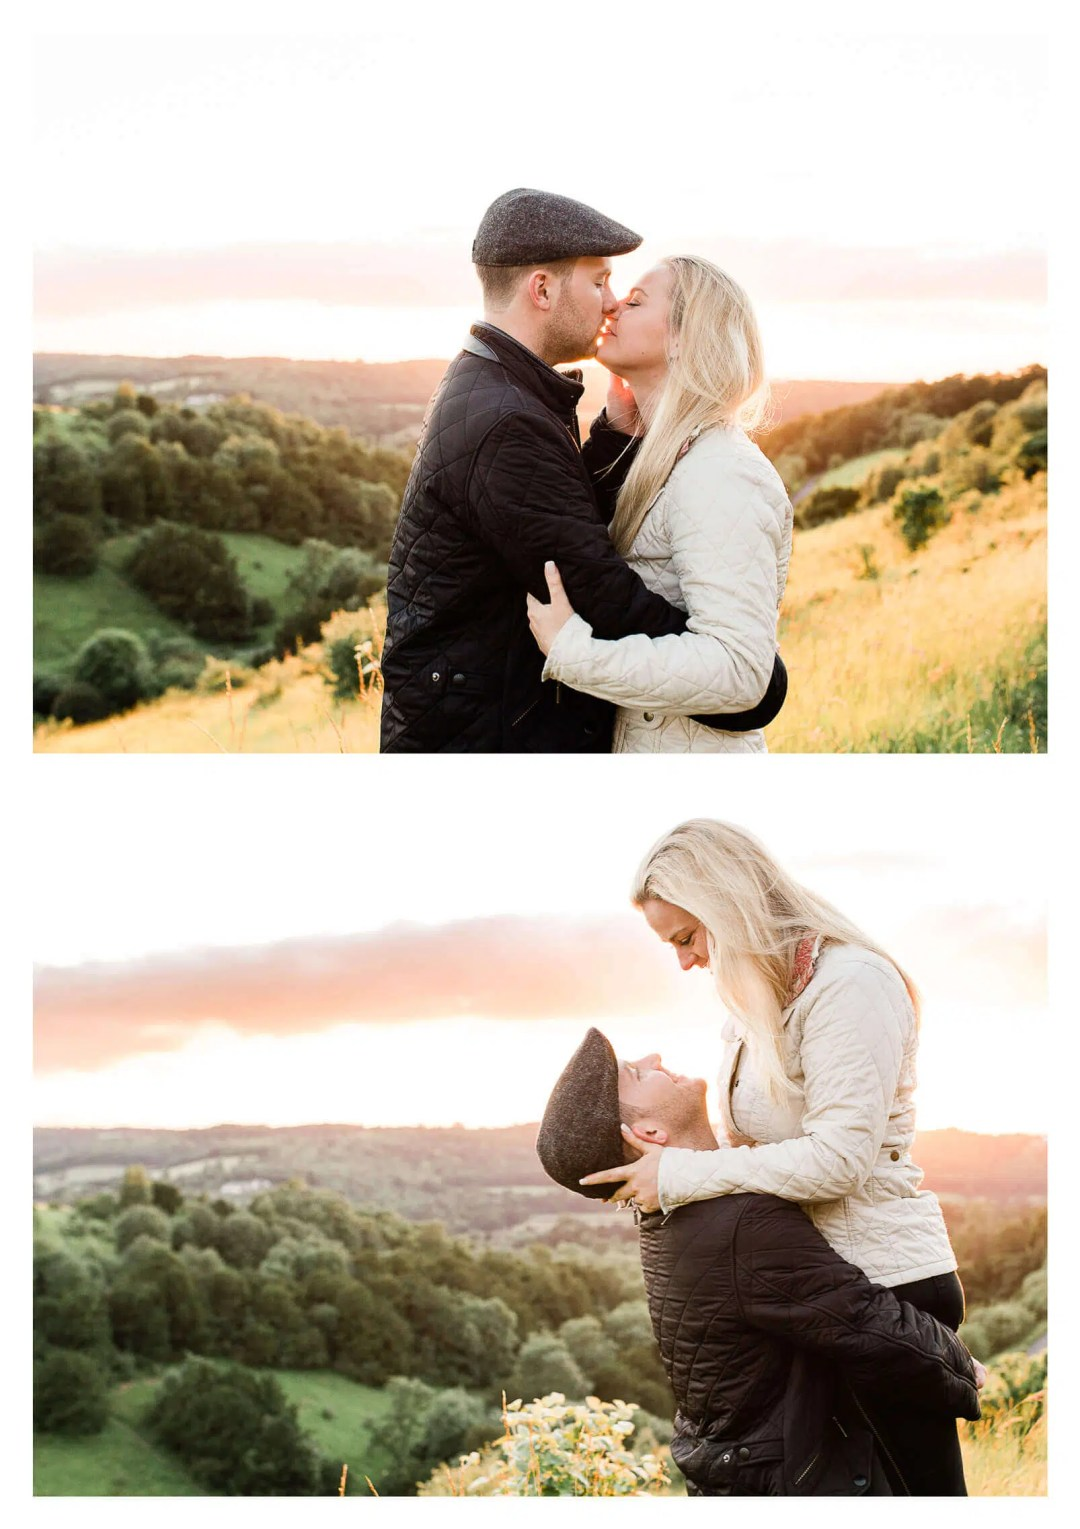 North Downs Box Hill engagement shoot at sunset   Surrey pre-wedding photographer-